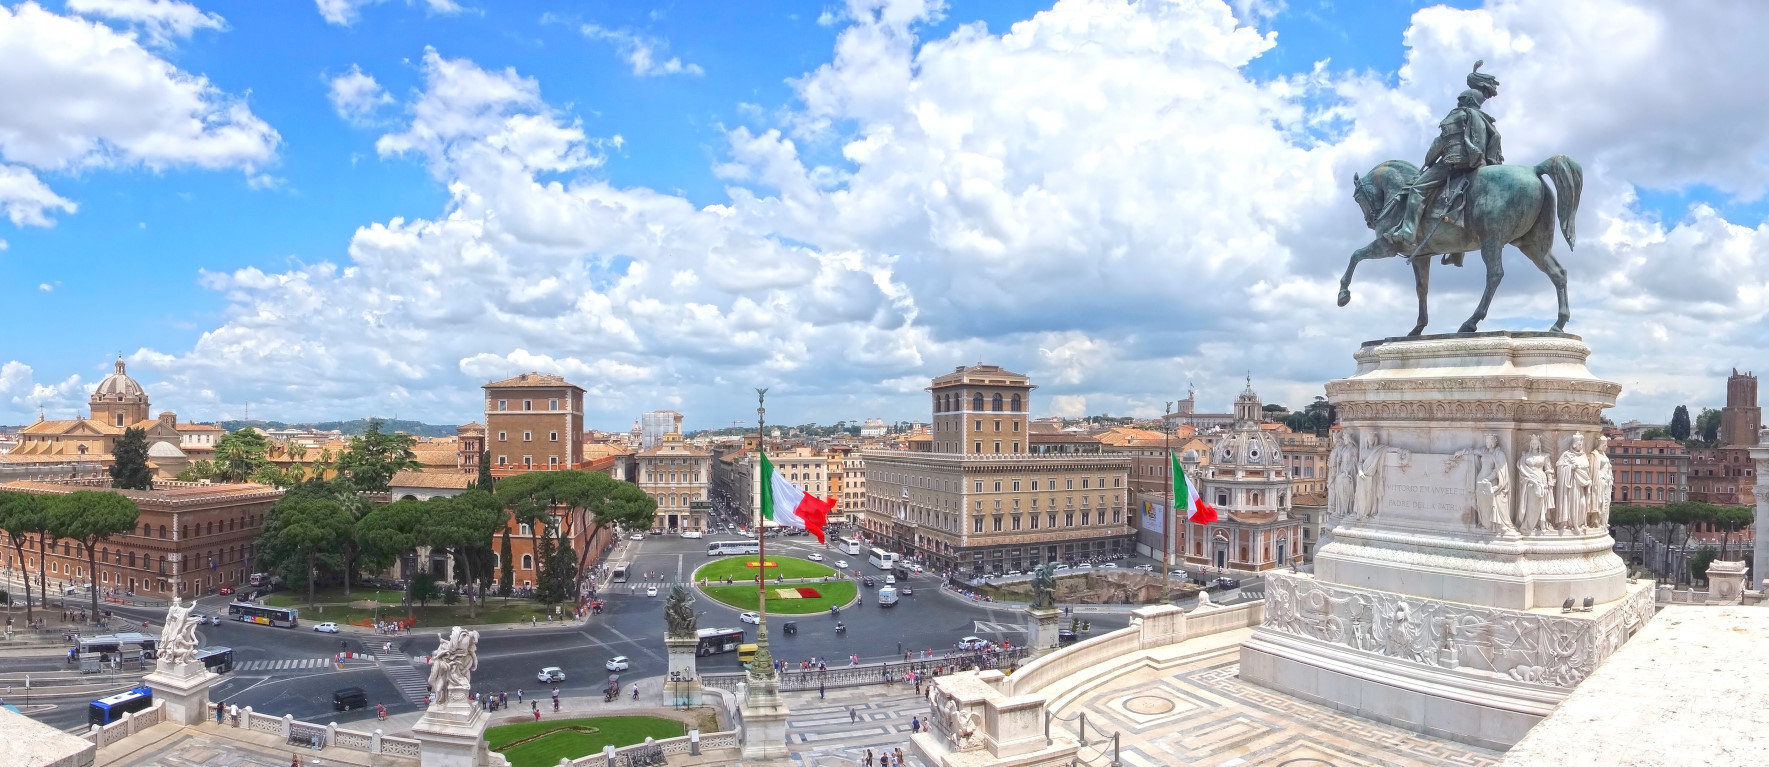 Piazza Venezia - Colosseum Rome Tickets